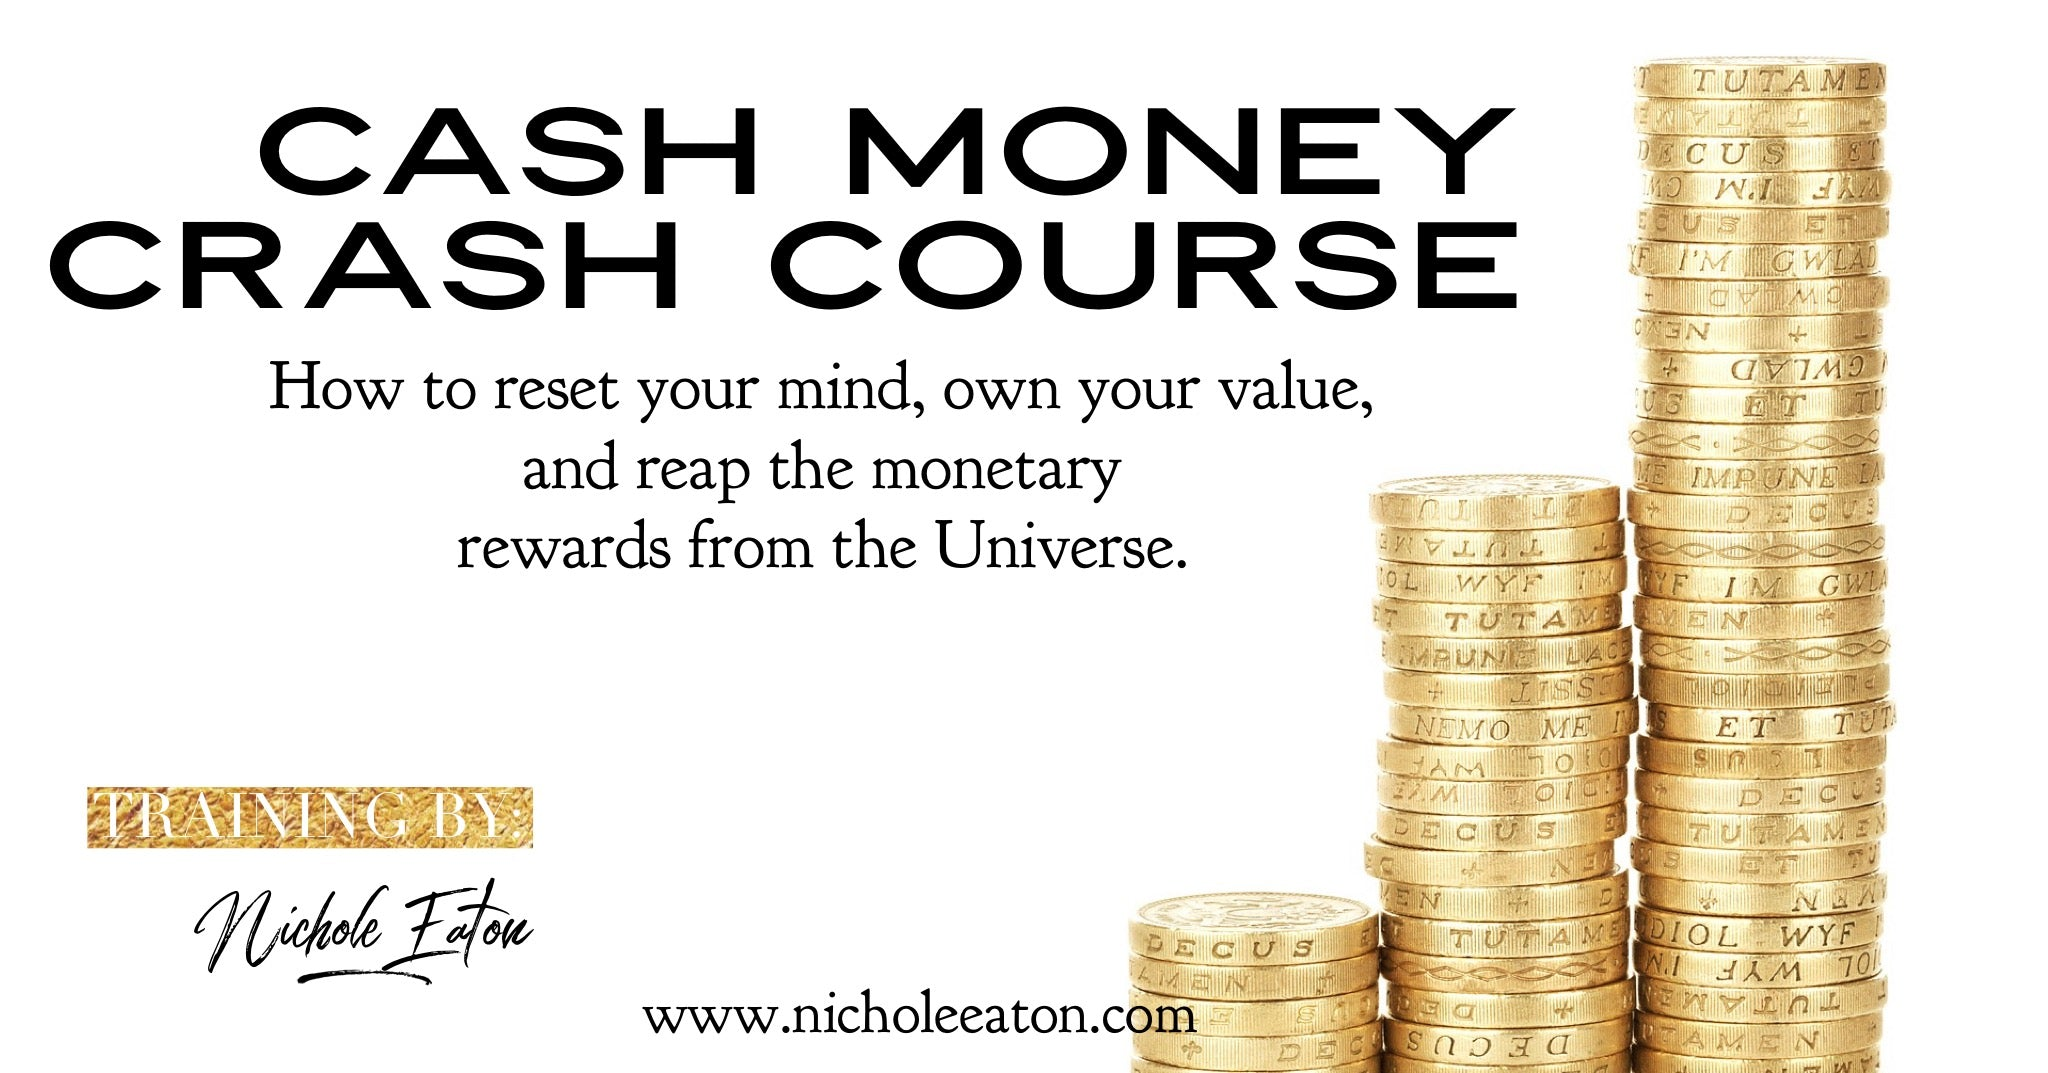 Cash Money Crash Course